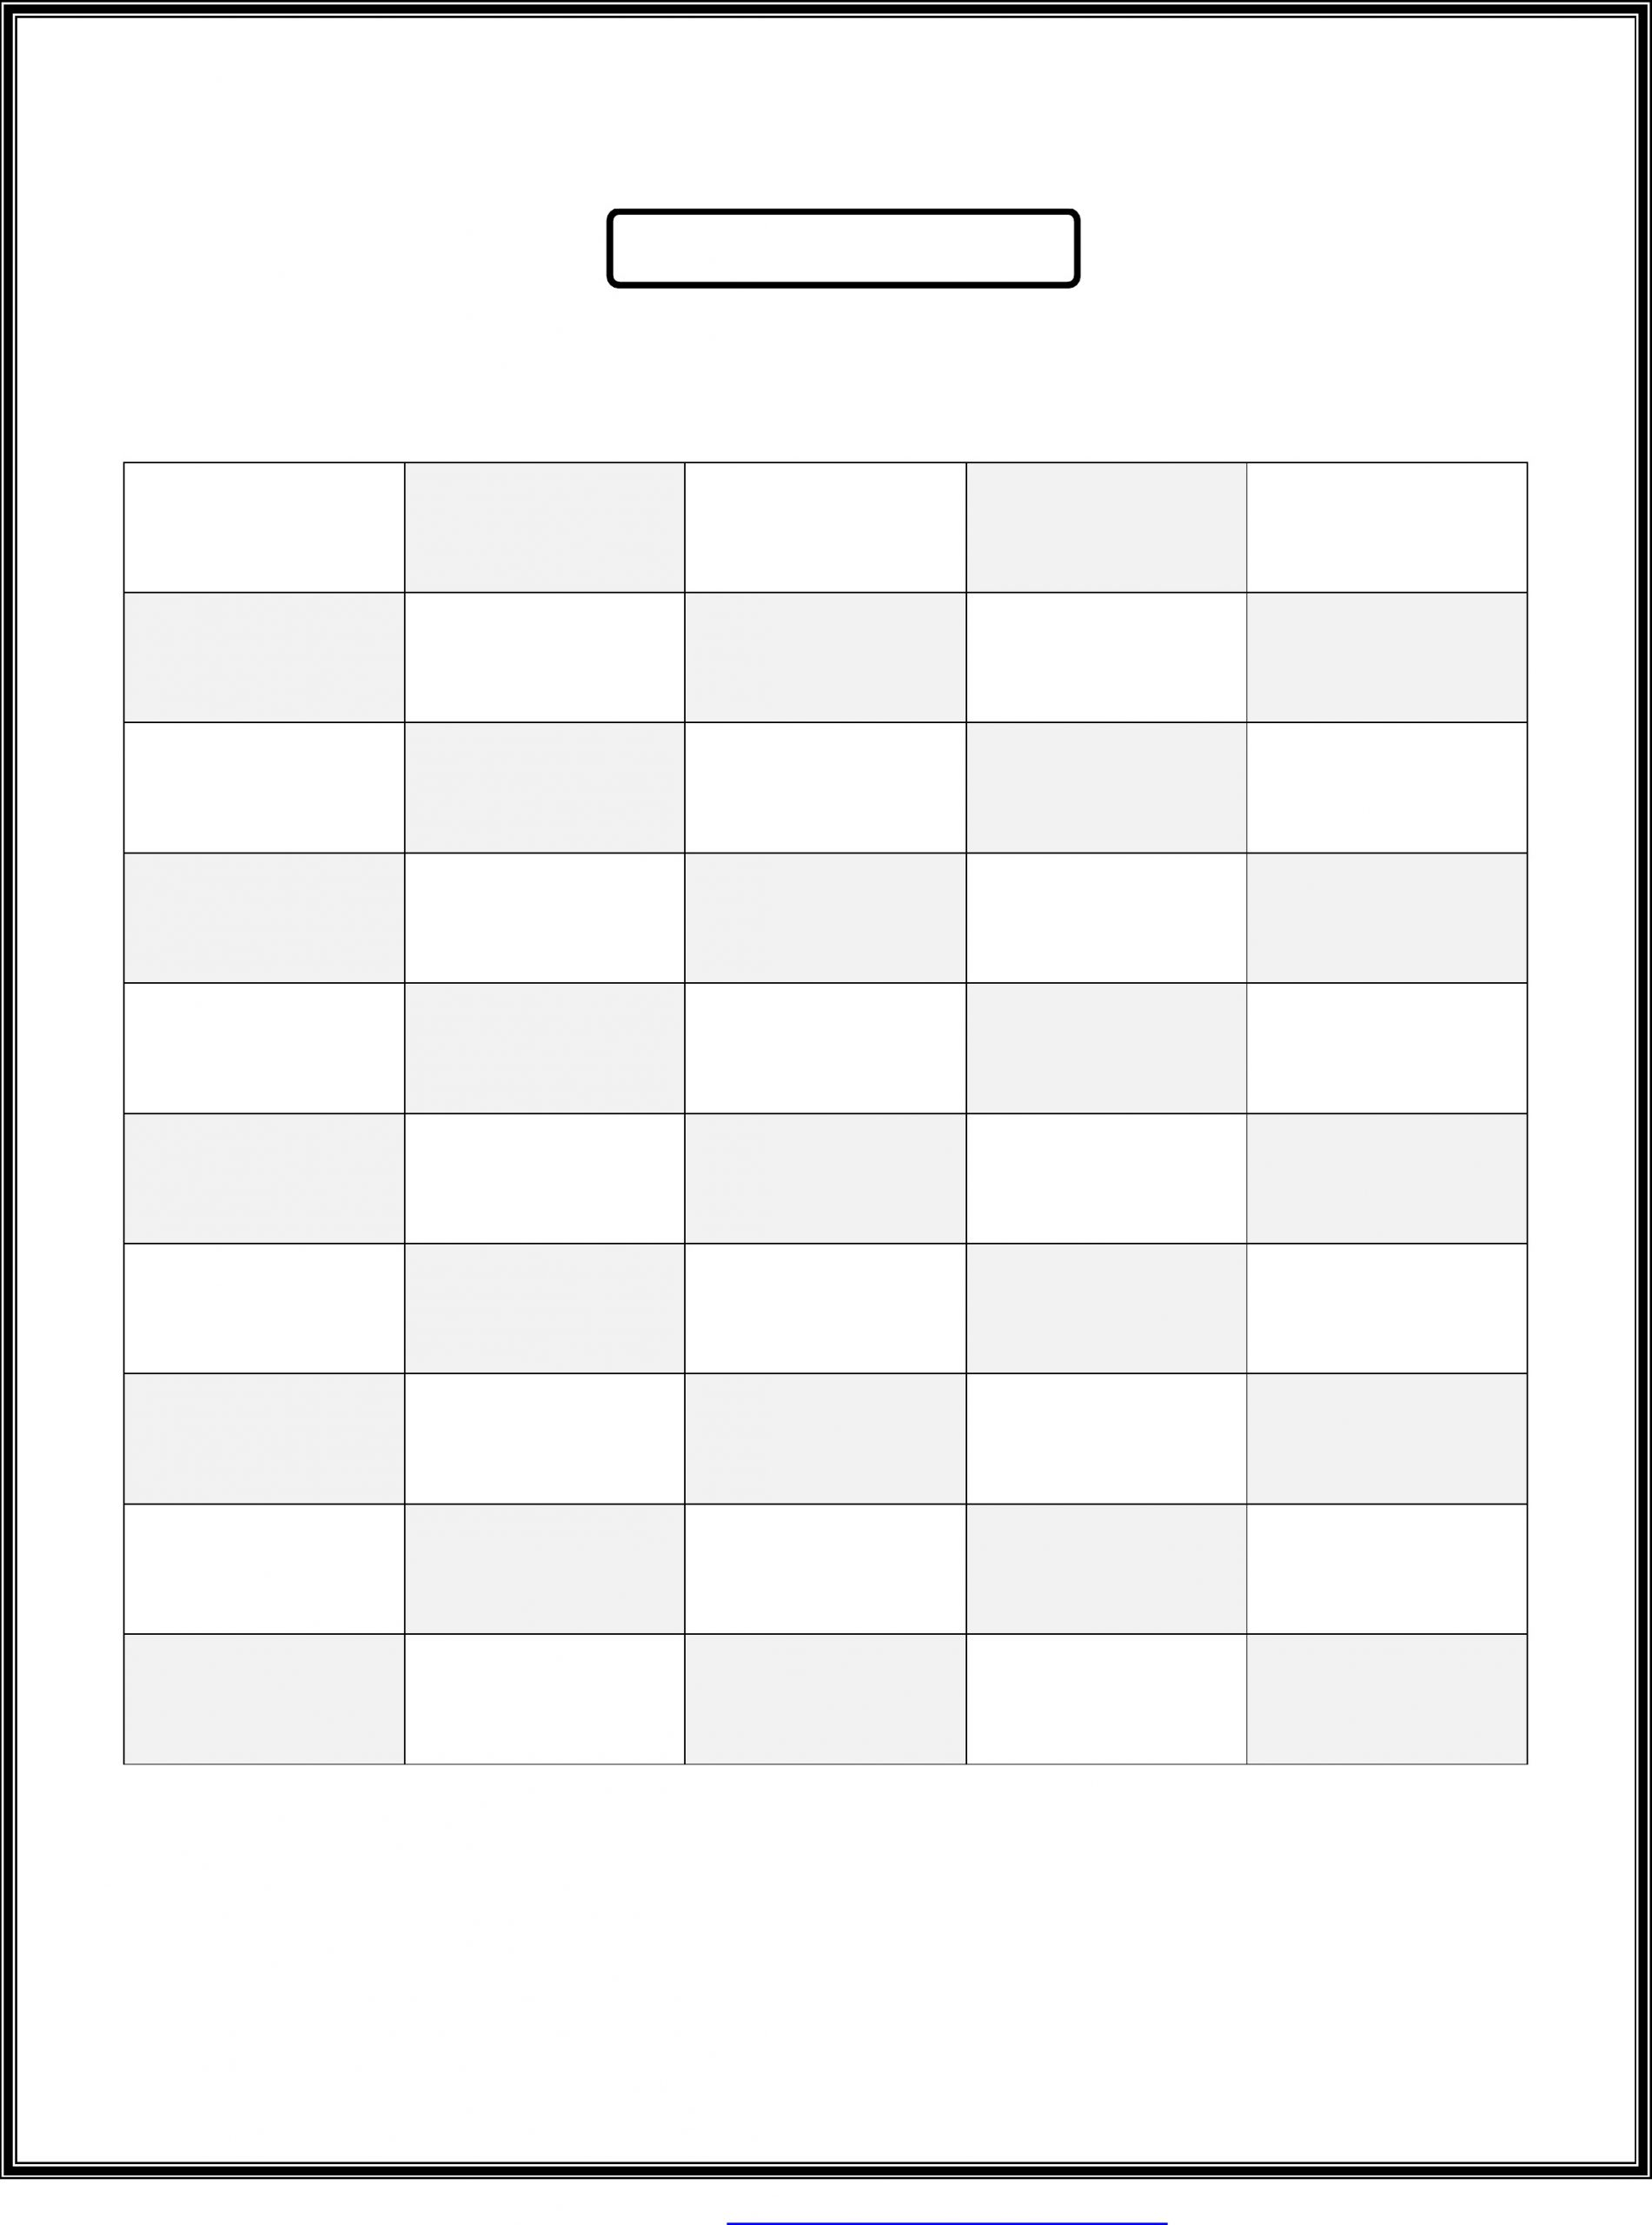 Blank Number Chart 1-50